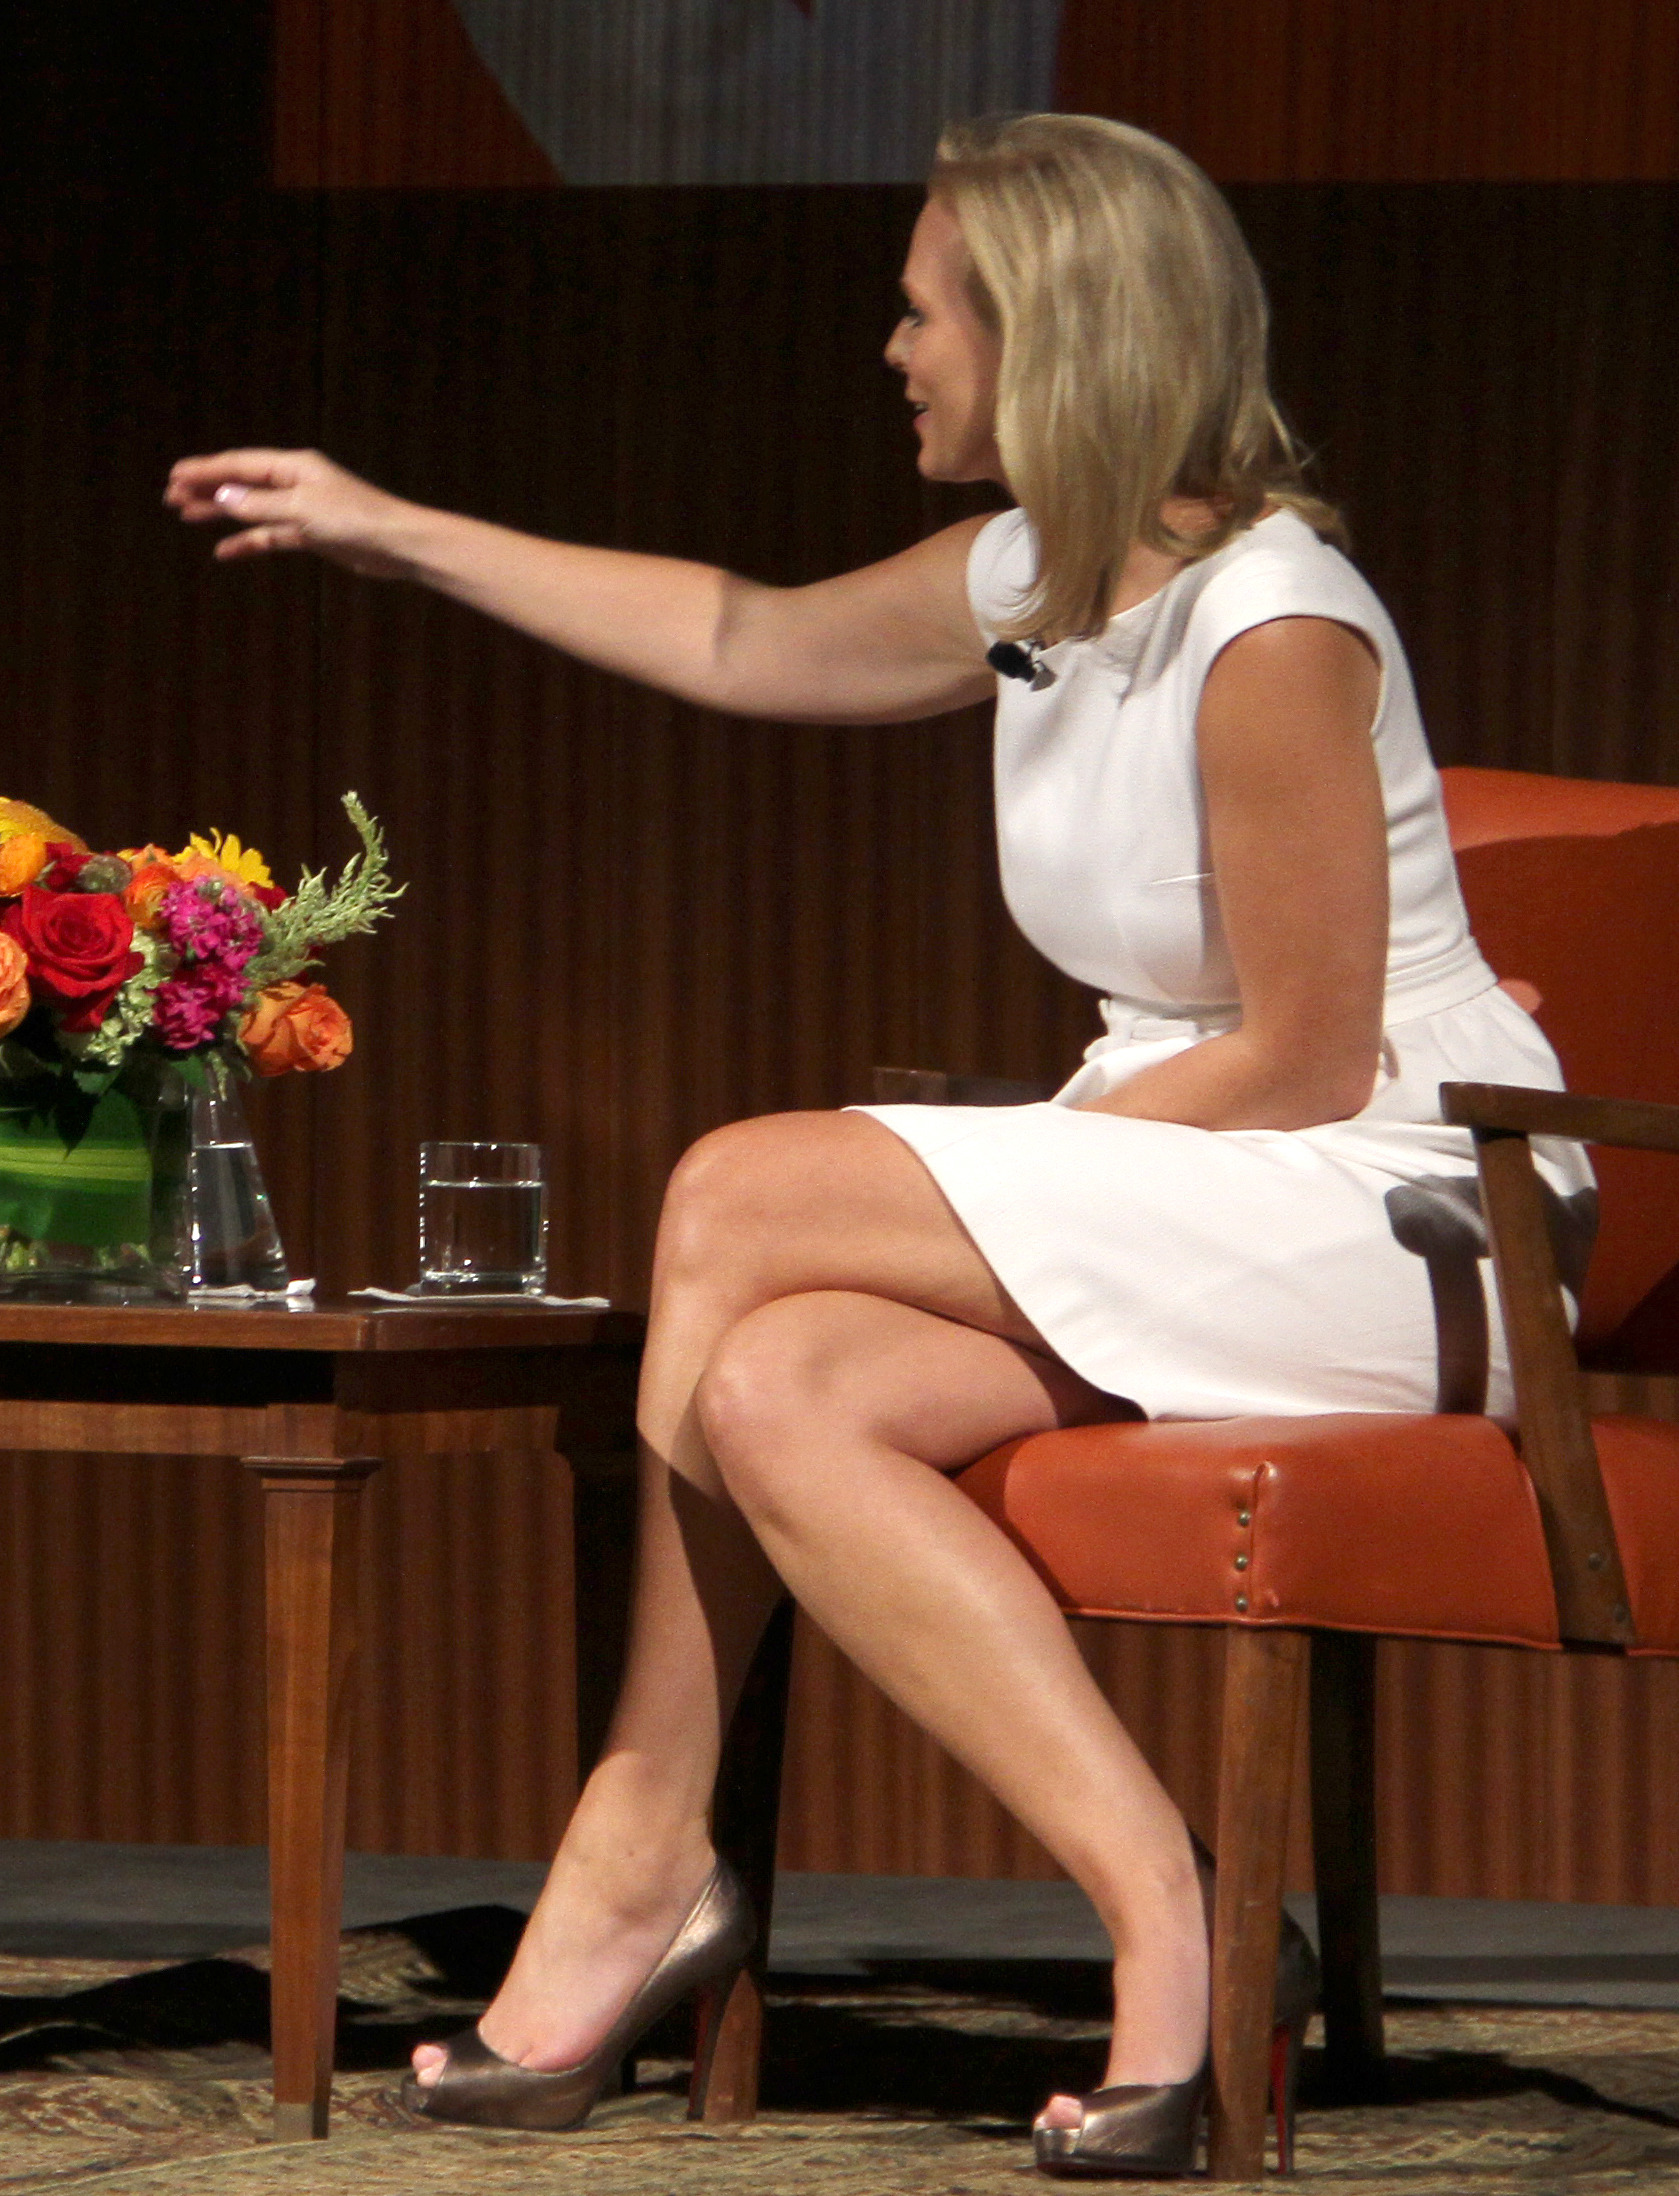 Margaret Hoover's Feet